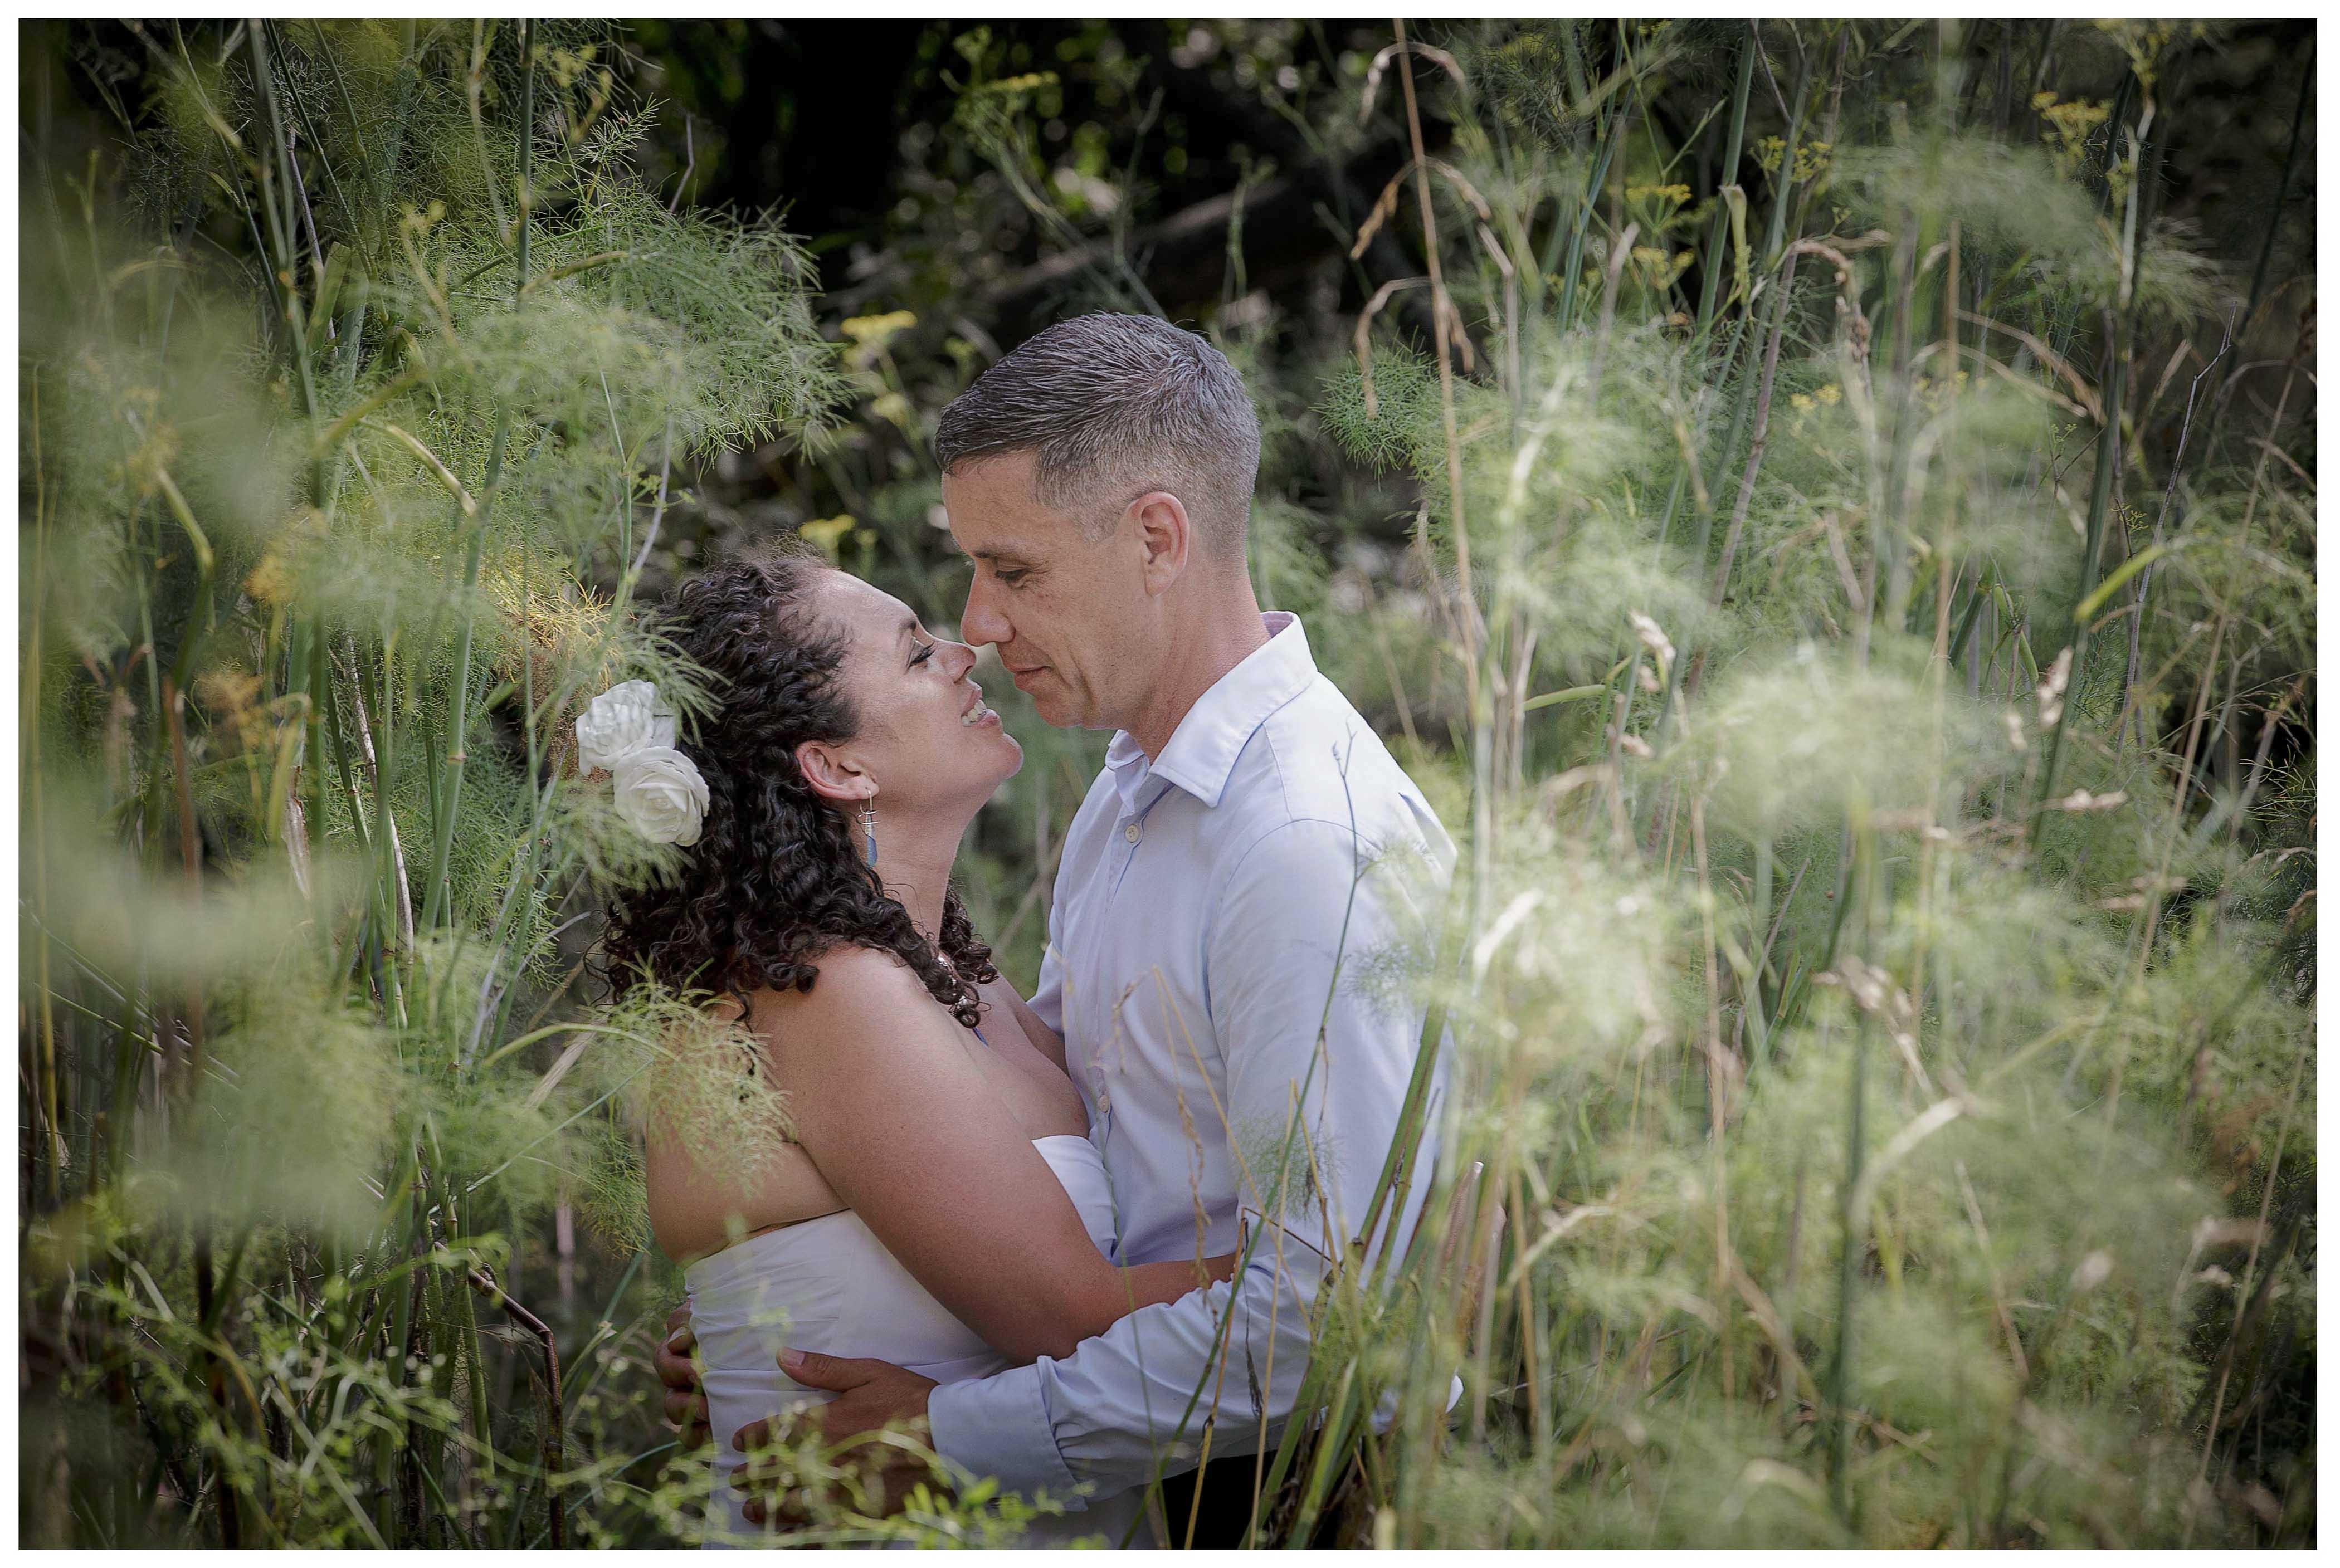 Puhoi wedding photo by Auckland wedding photographer Chris Loufte